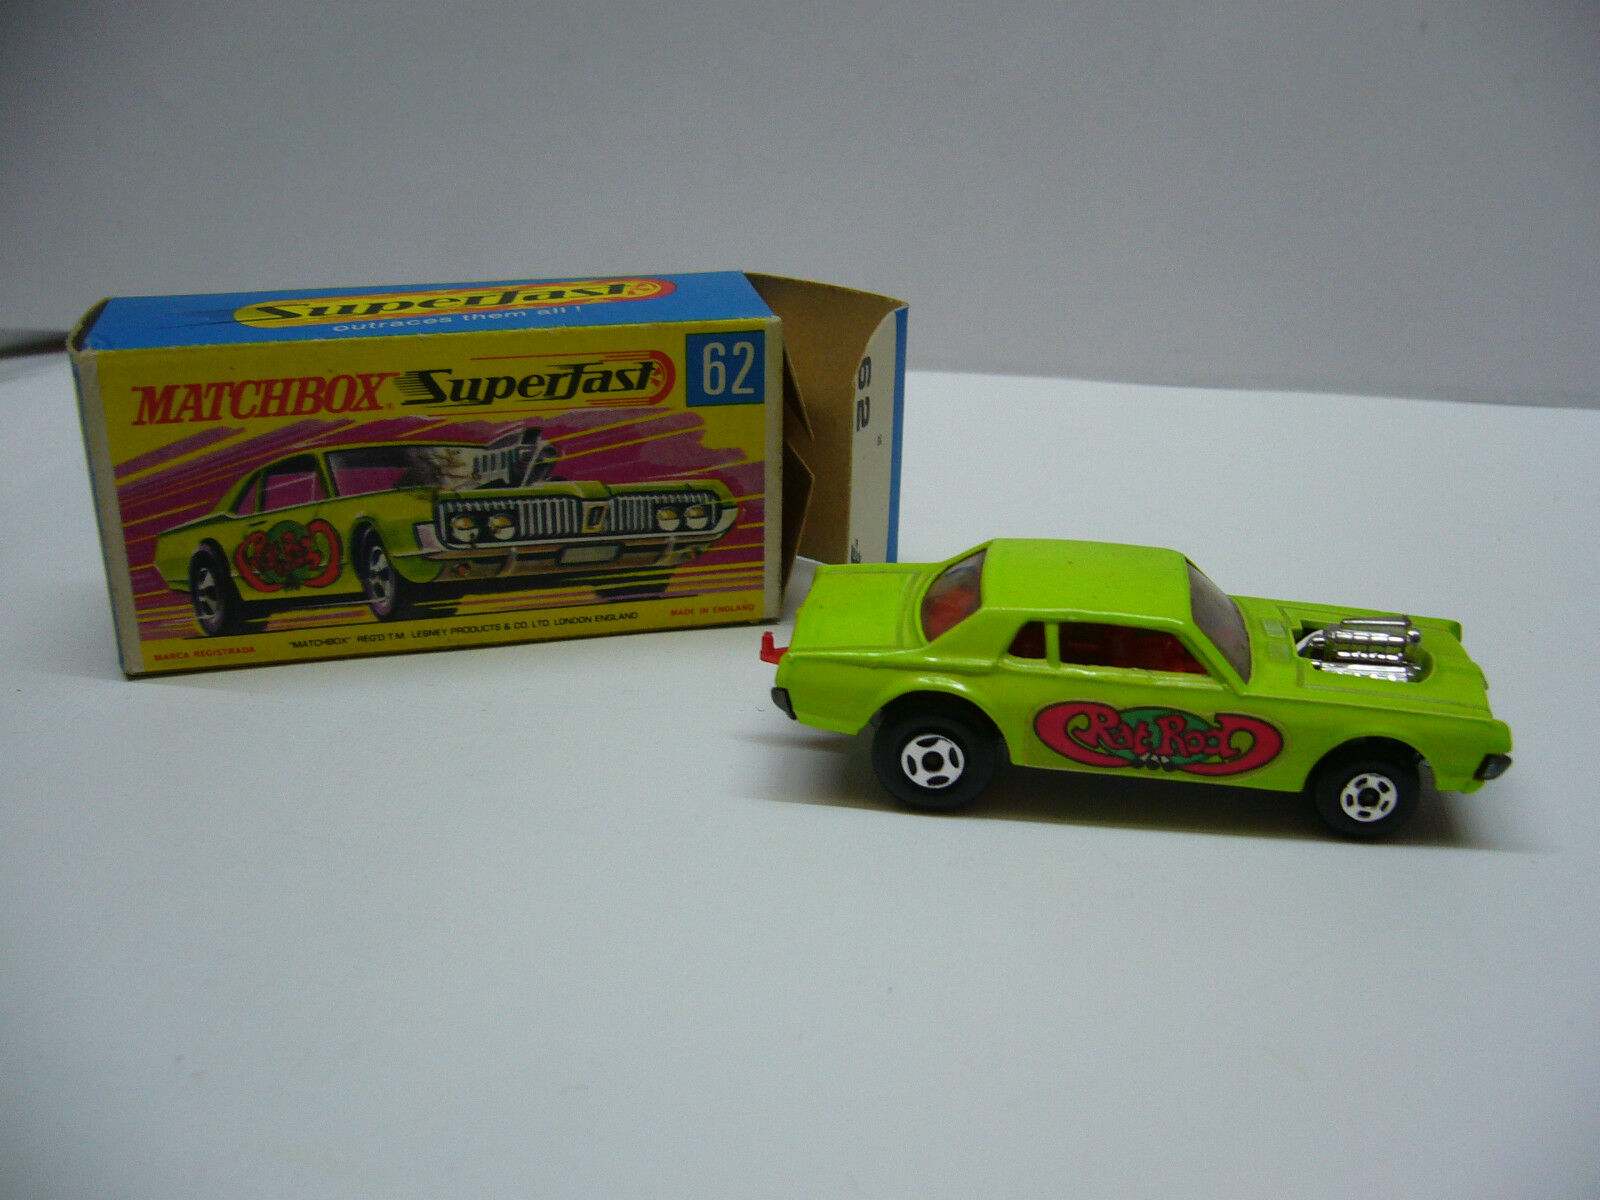 Matchbox  Superfast  MB 62 Pat Rod Dragster - helles yellowgreen  - Made in England